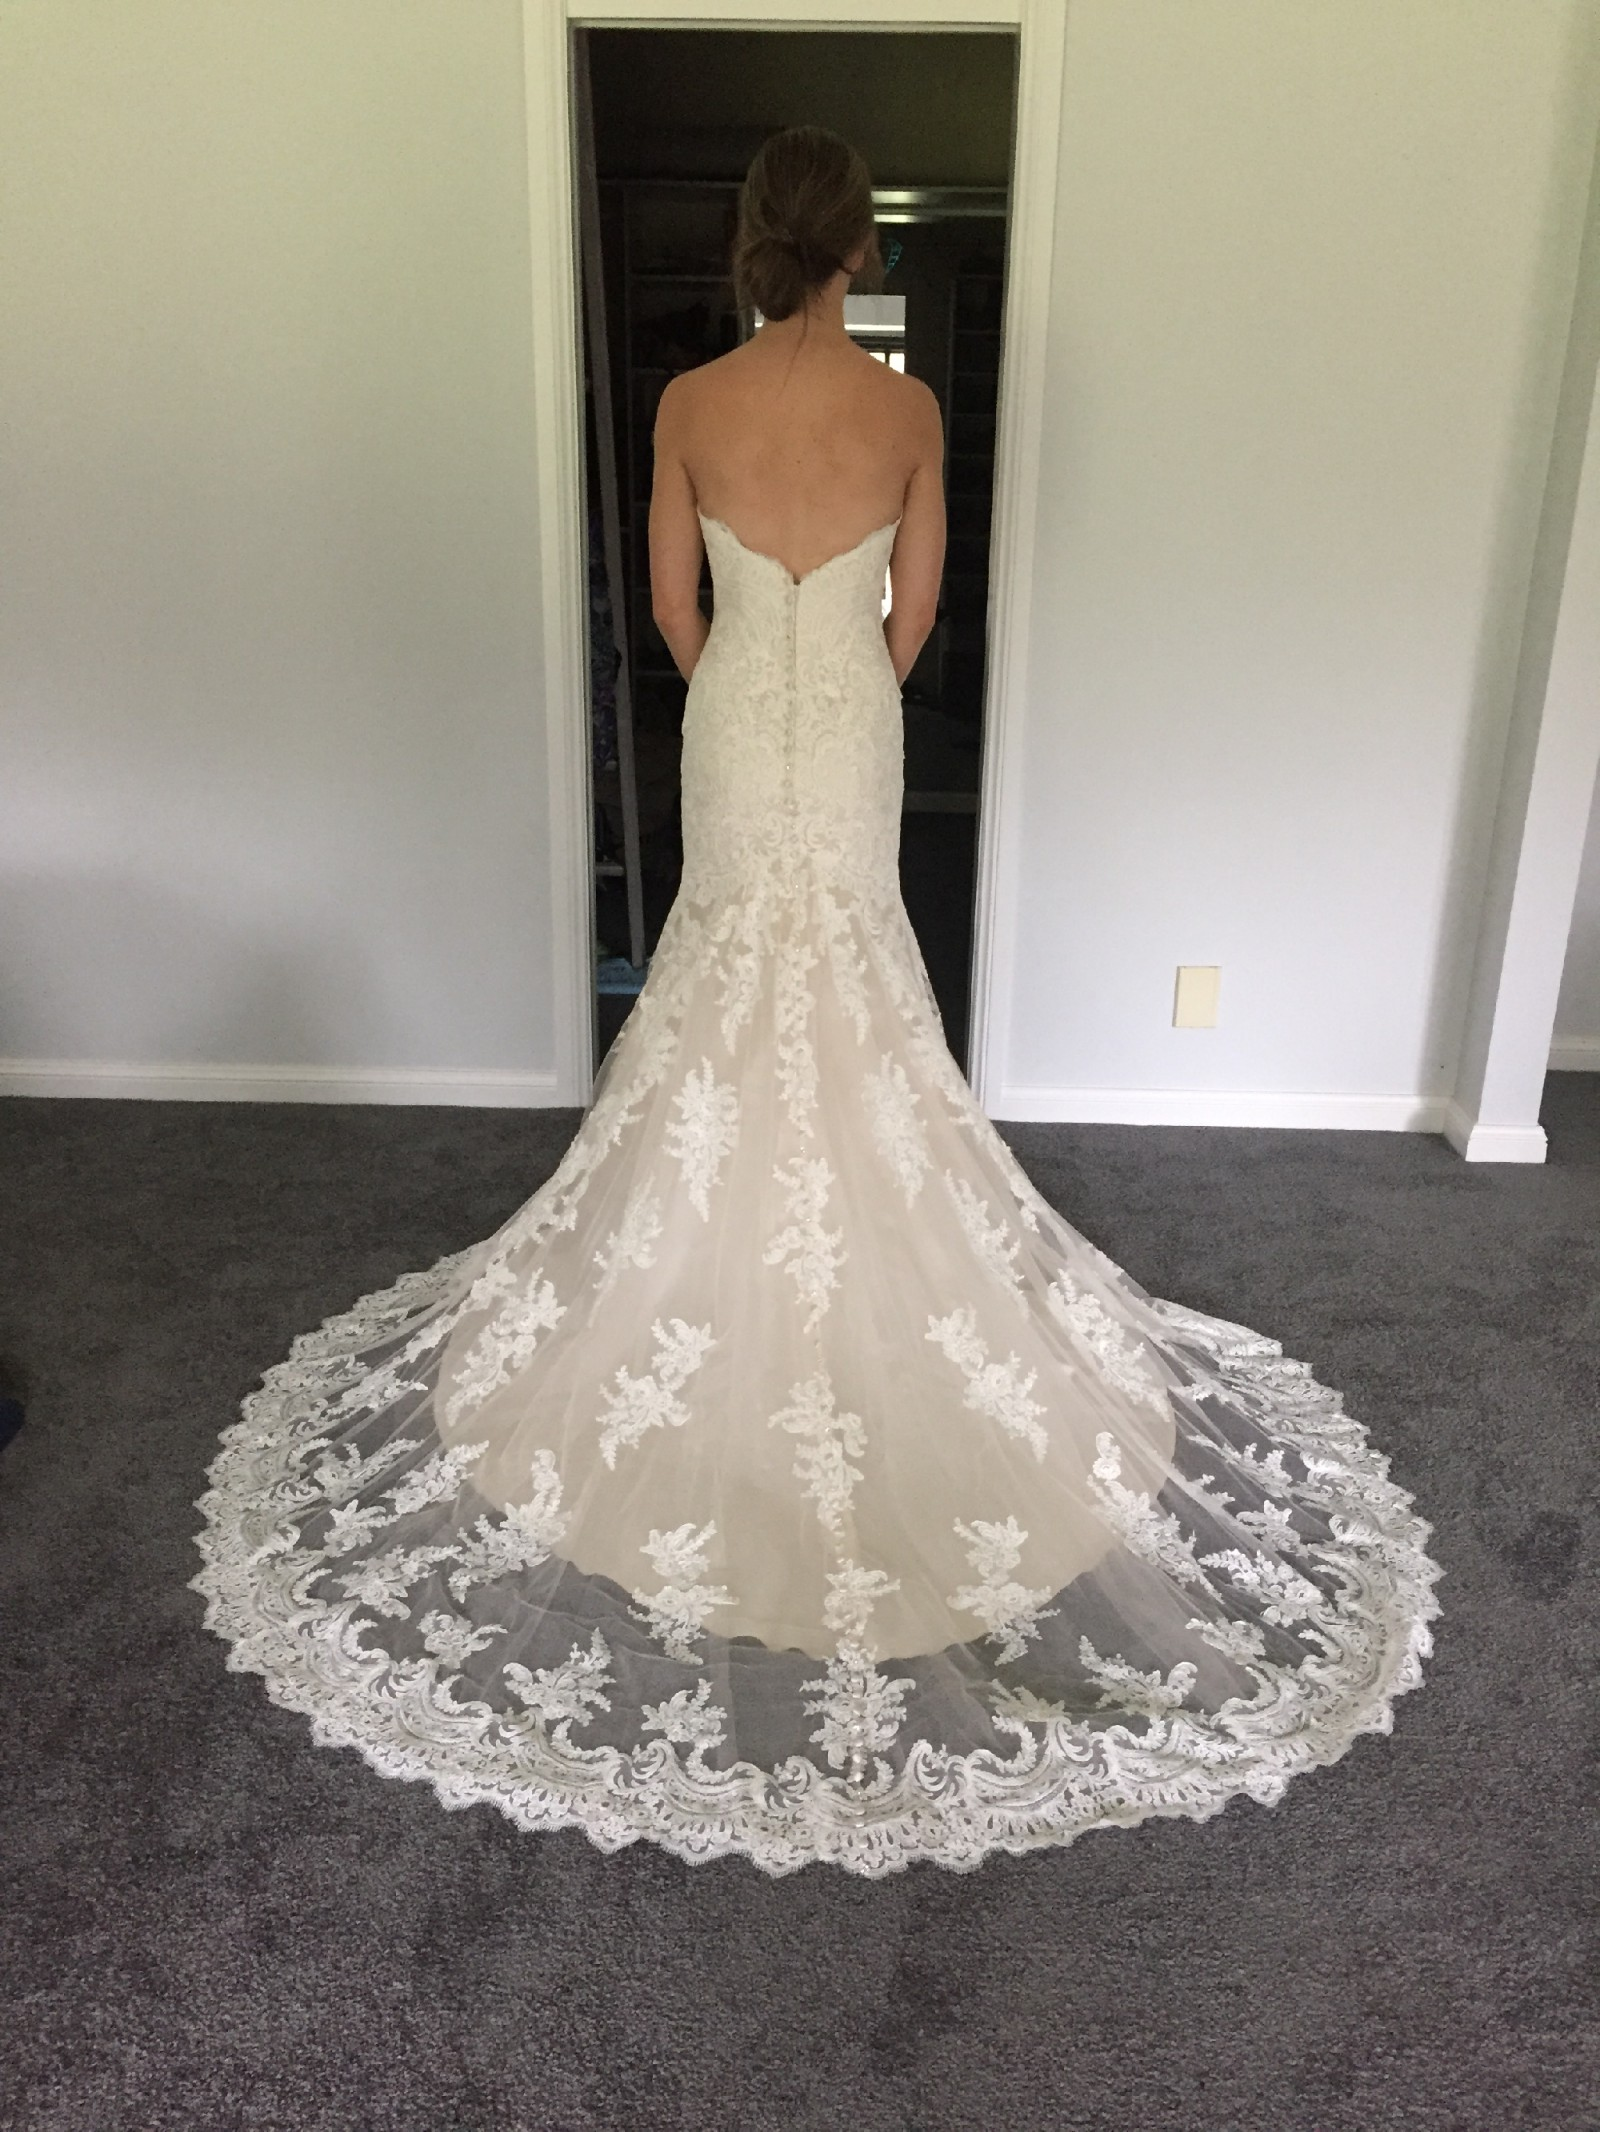 1a9f4f608ca46 Allure Bridals Style 9250 Second Hand Wedding Dress on Sale 58% Off -  Stillwhite Australia